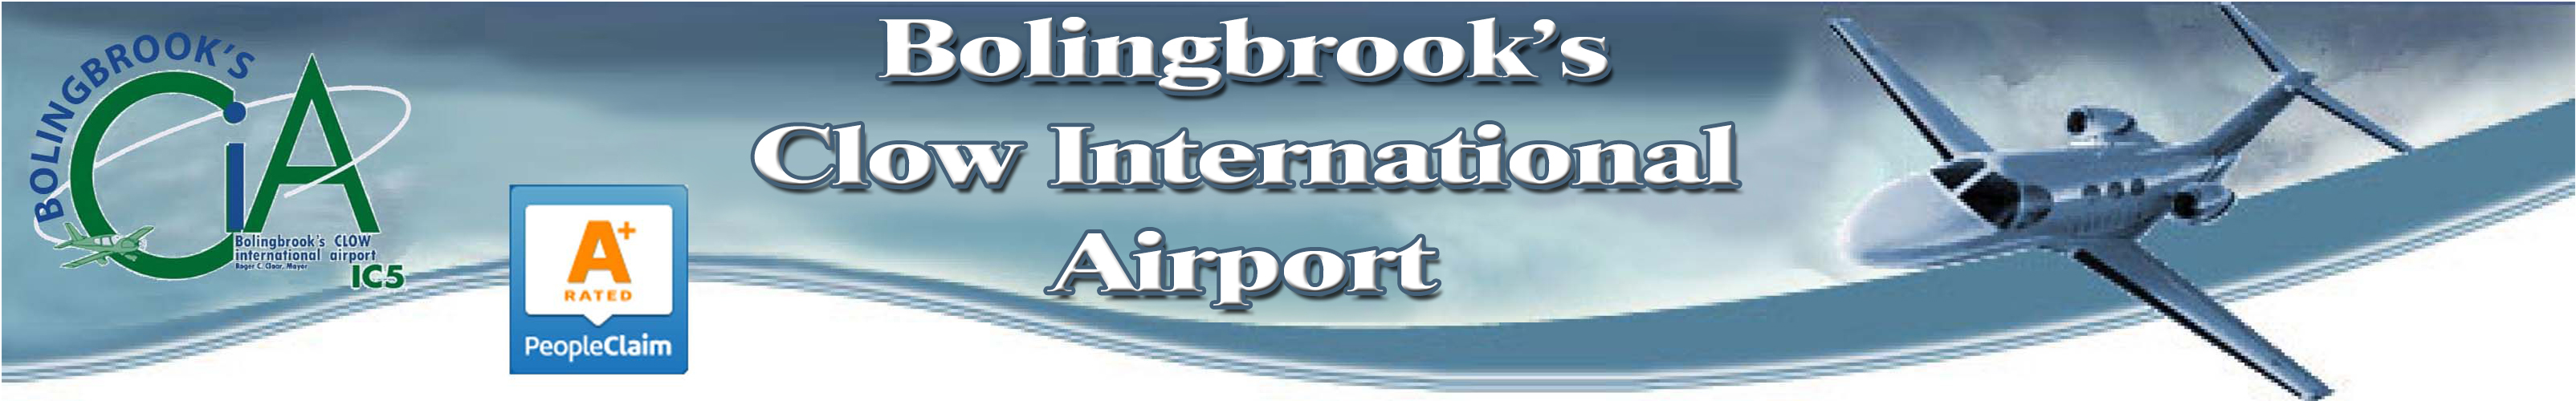 Clow International Airport